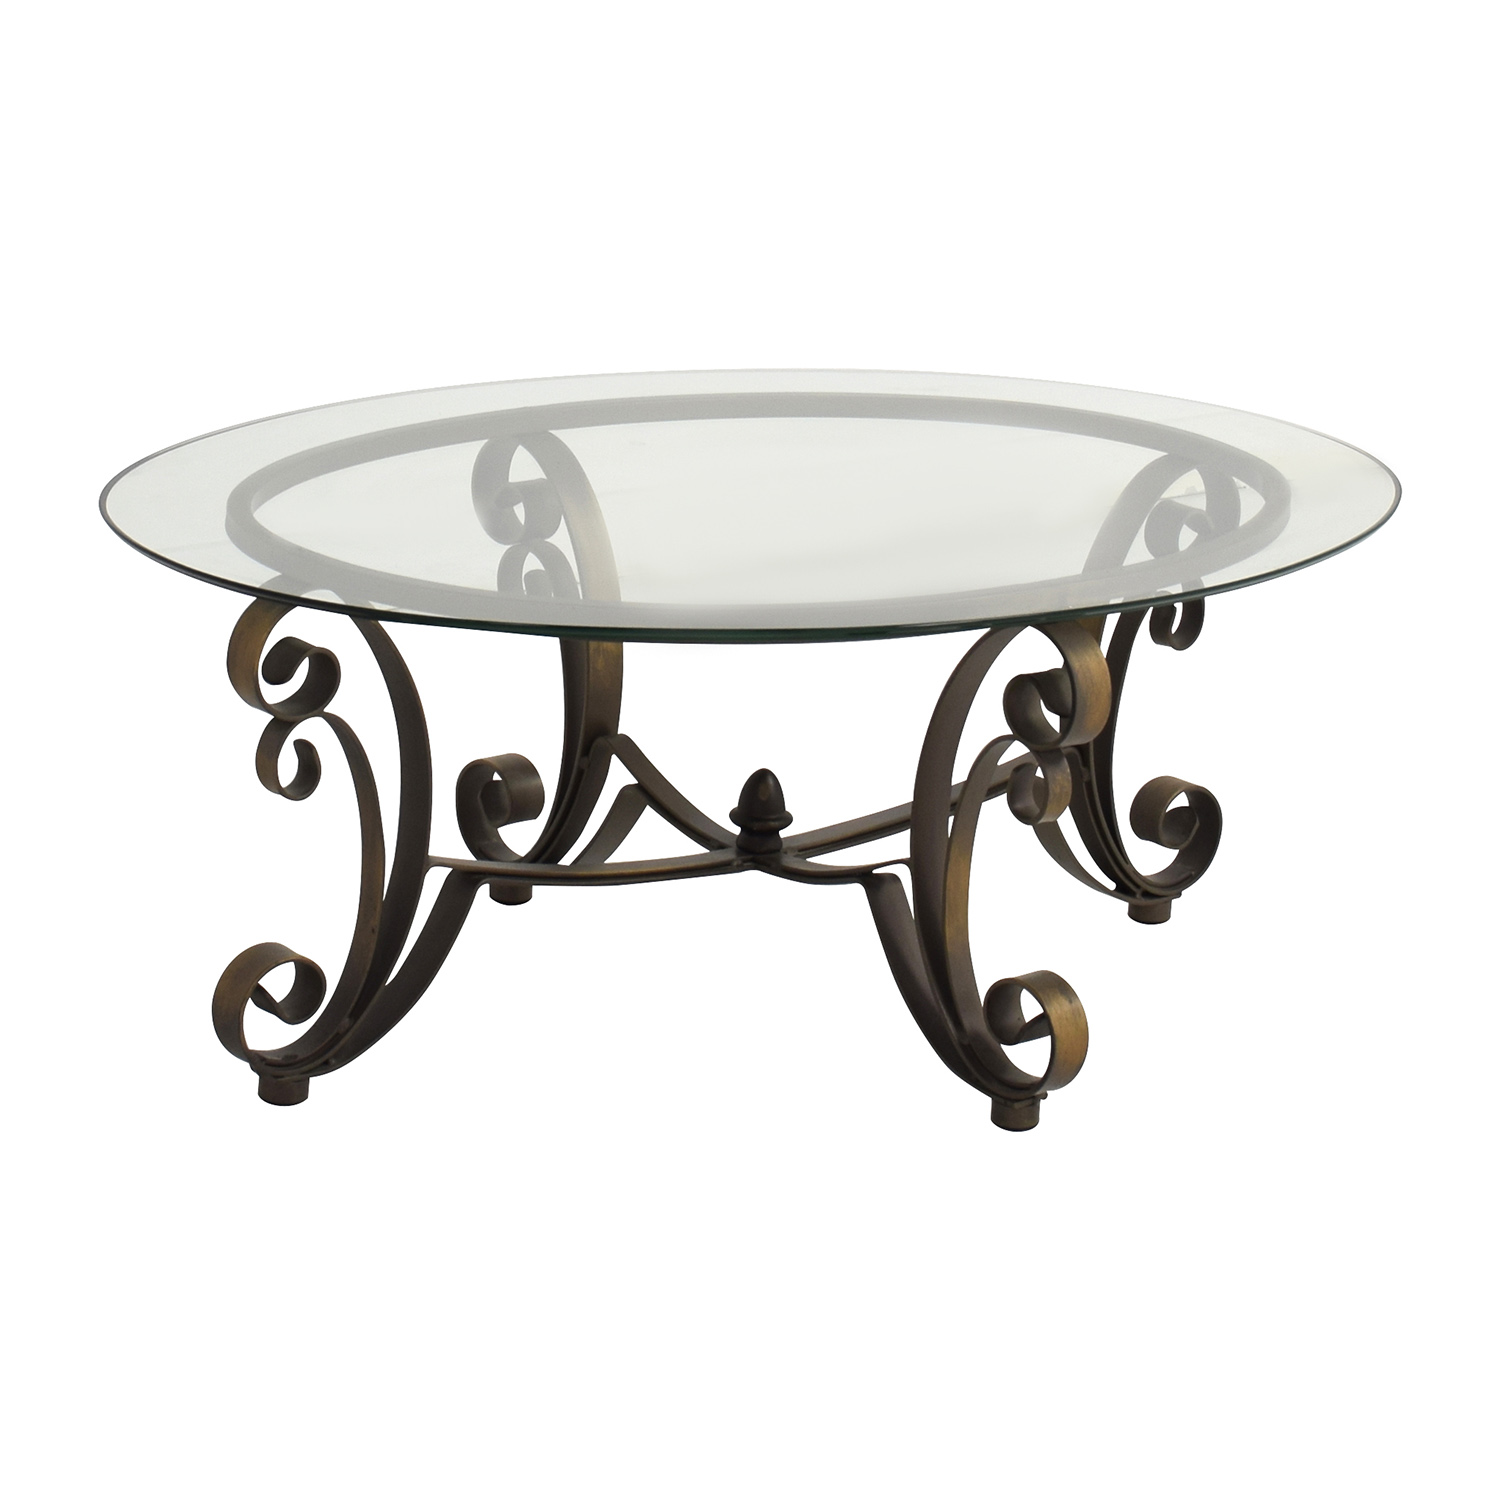 84% off - rooms to go rooms to go metal oval coffee table / tables